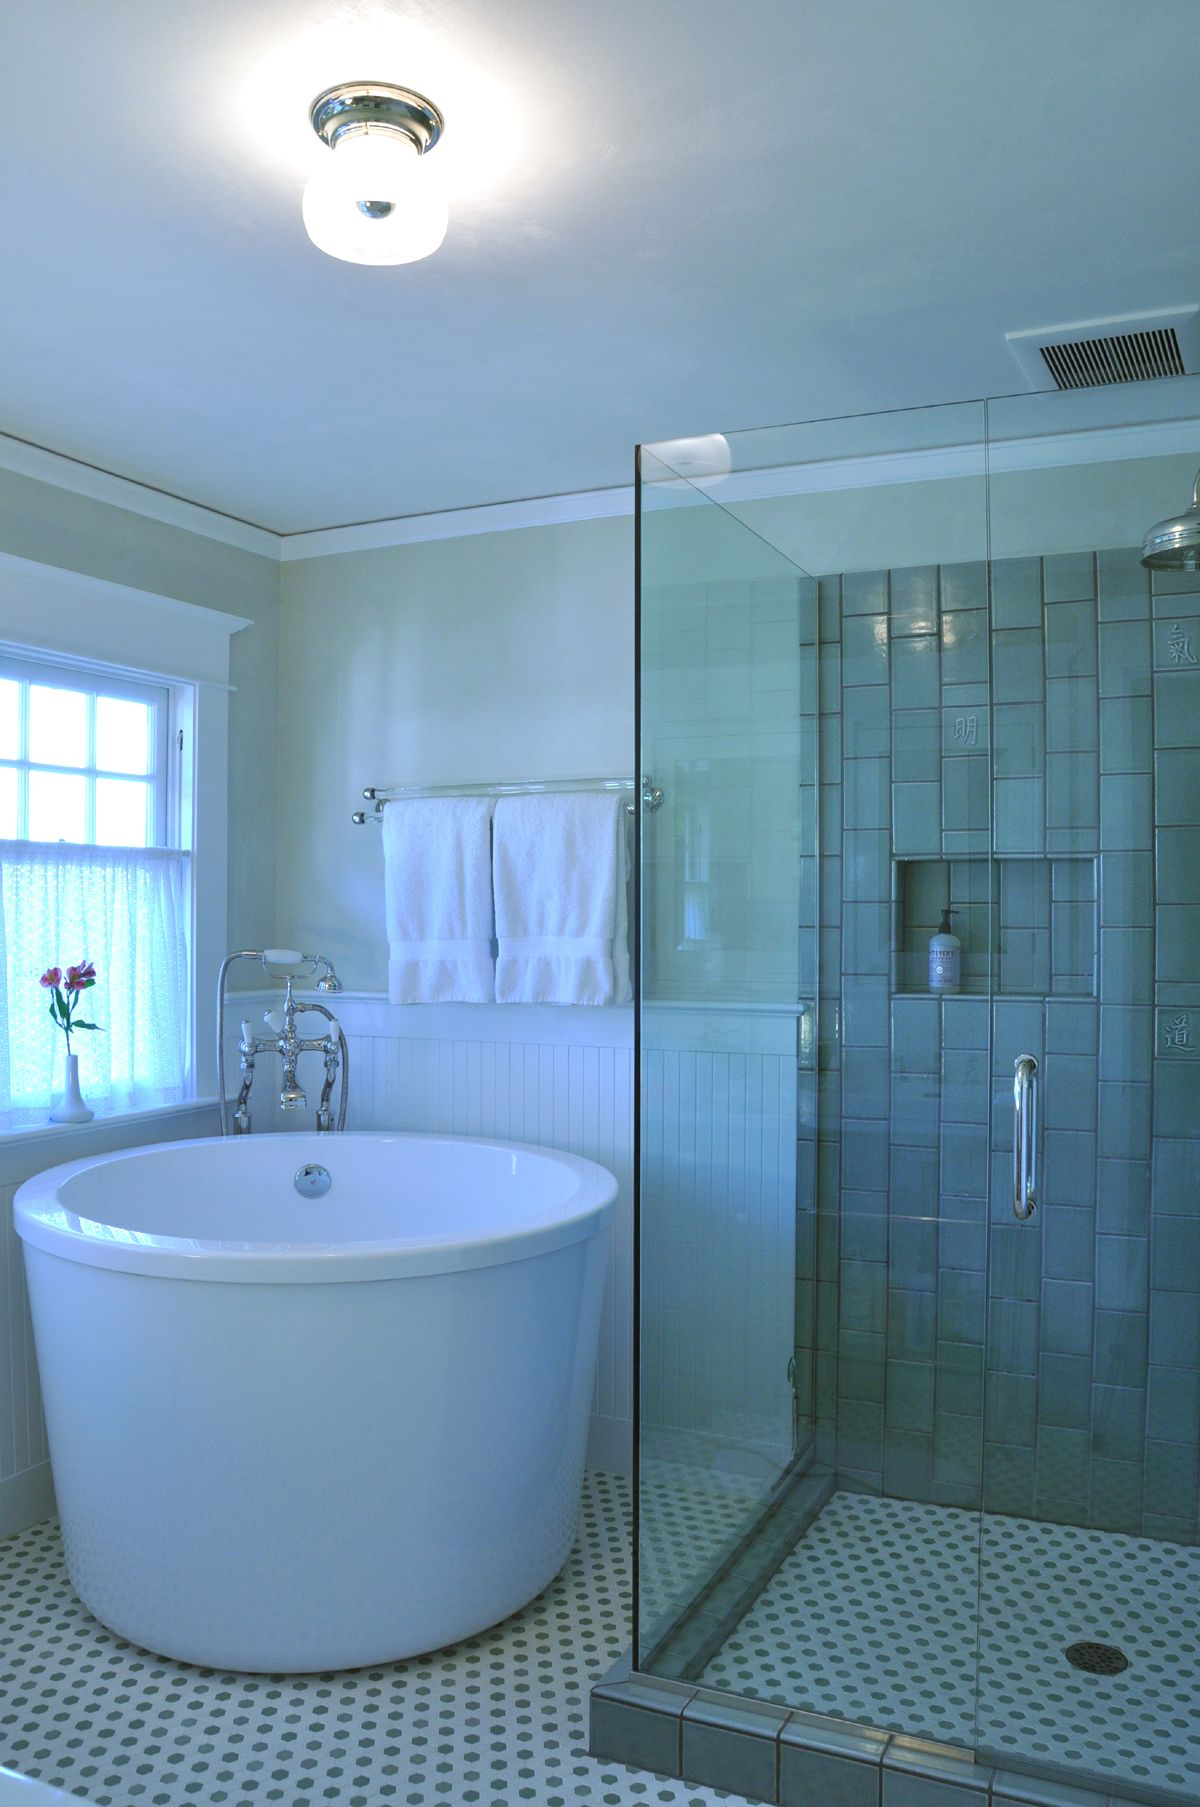 Japanese soaking tub in master bathroom for recent remodel project ...